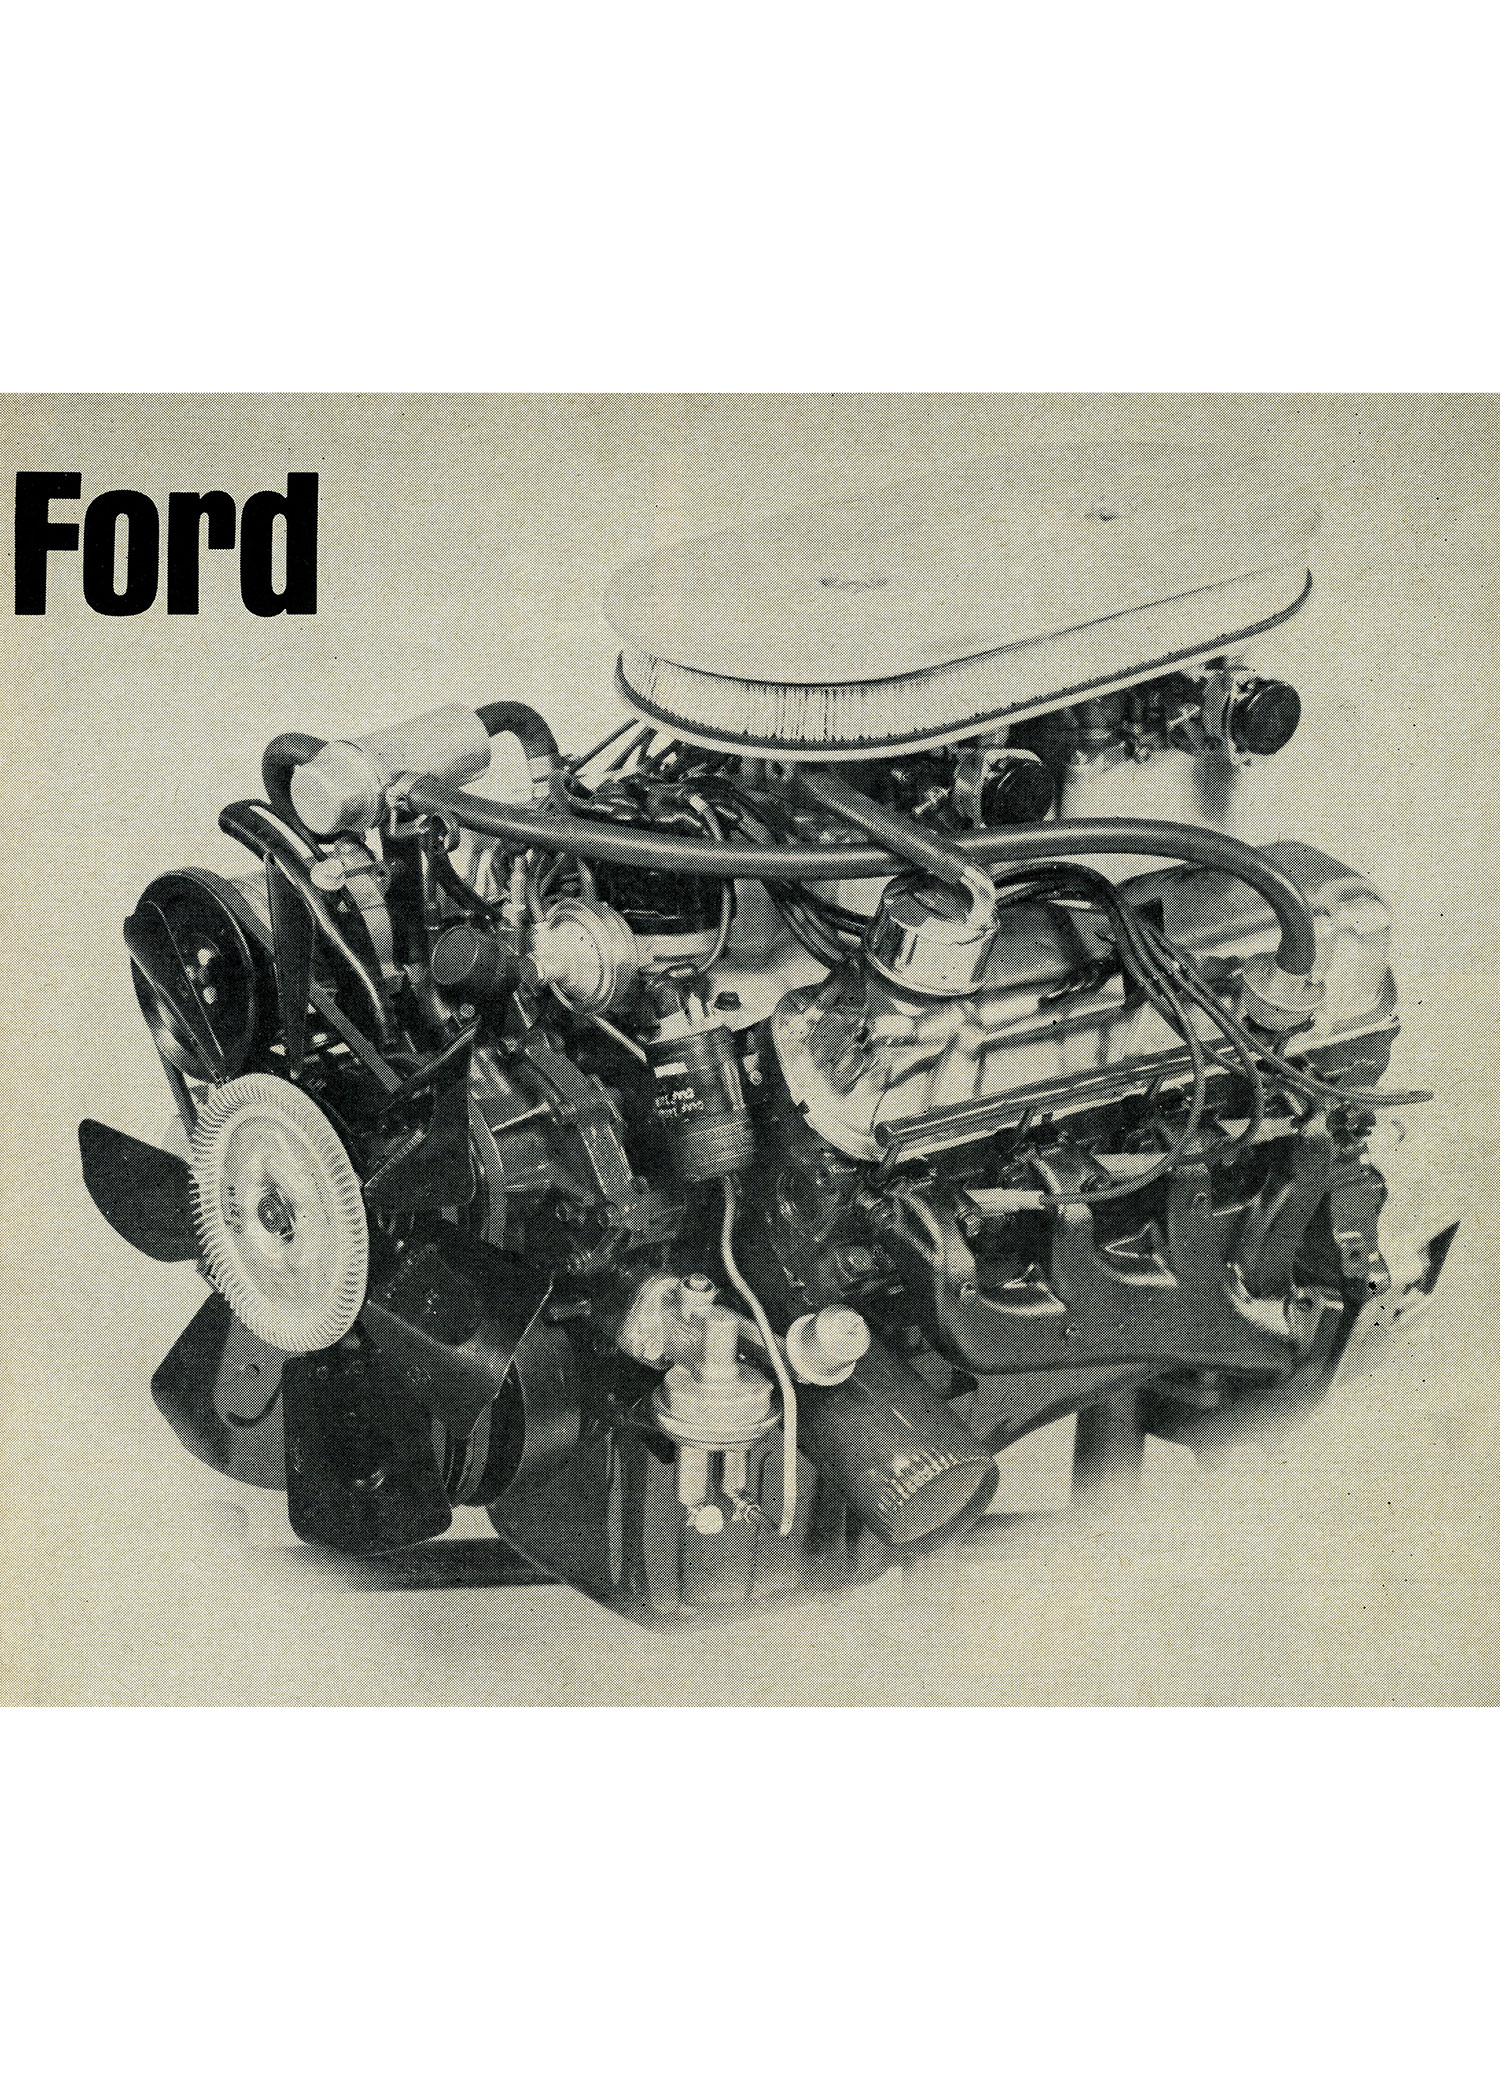 Ford 302 Tunnel Street Engine